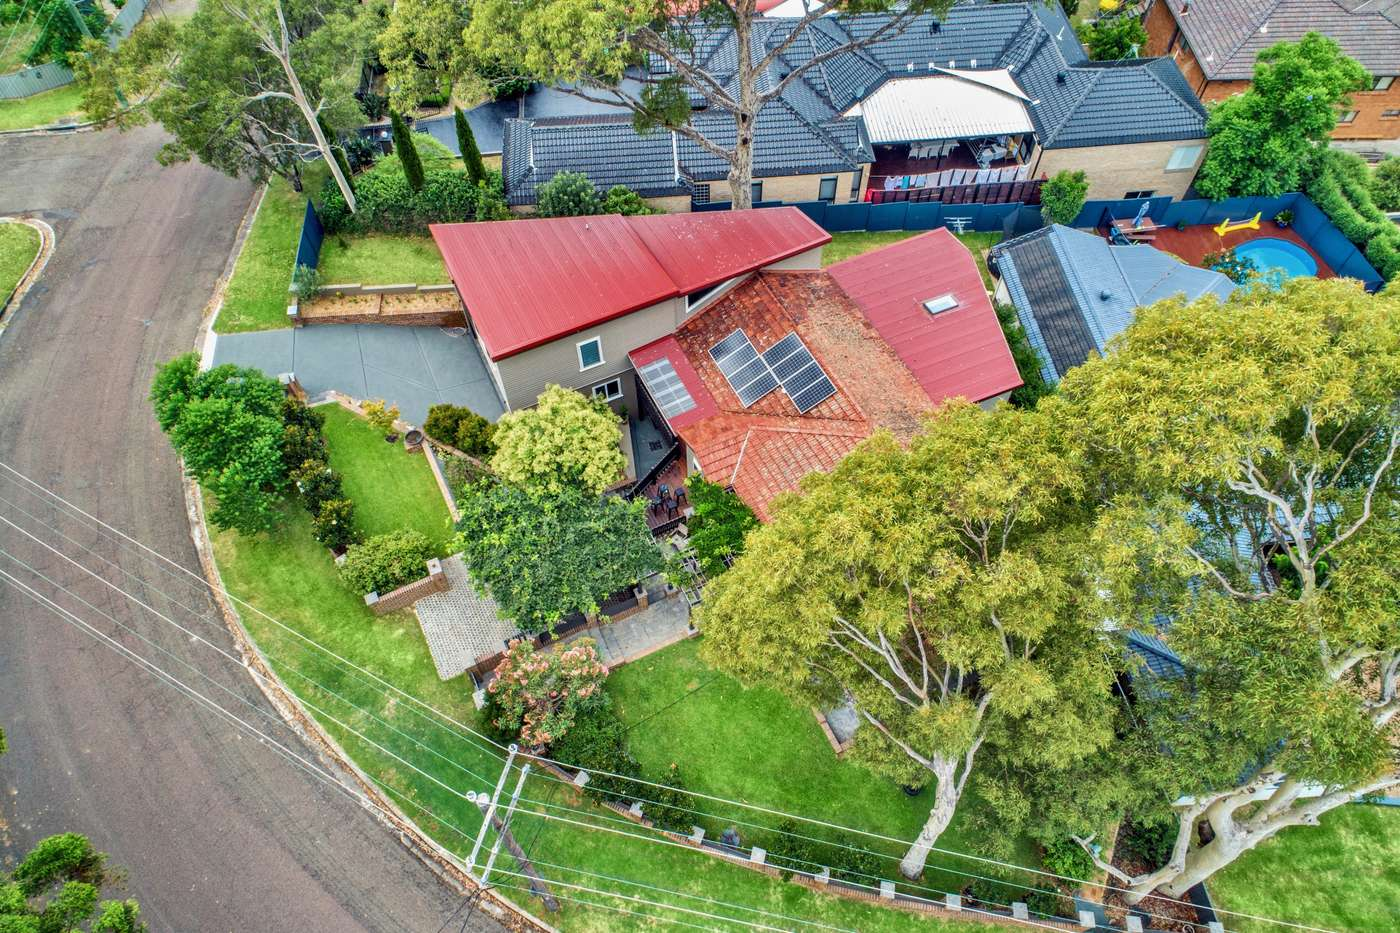 Main view of Homely house listing, 59 Mountain View Pde, New Lambton Heights, NSW 2305